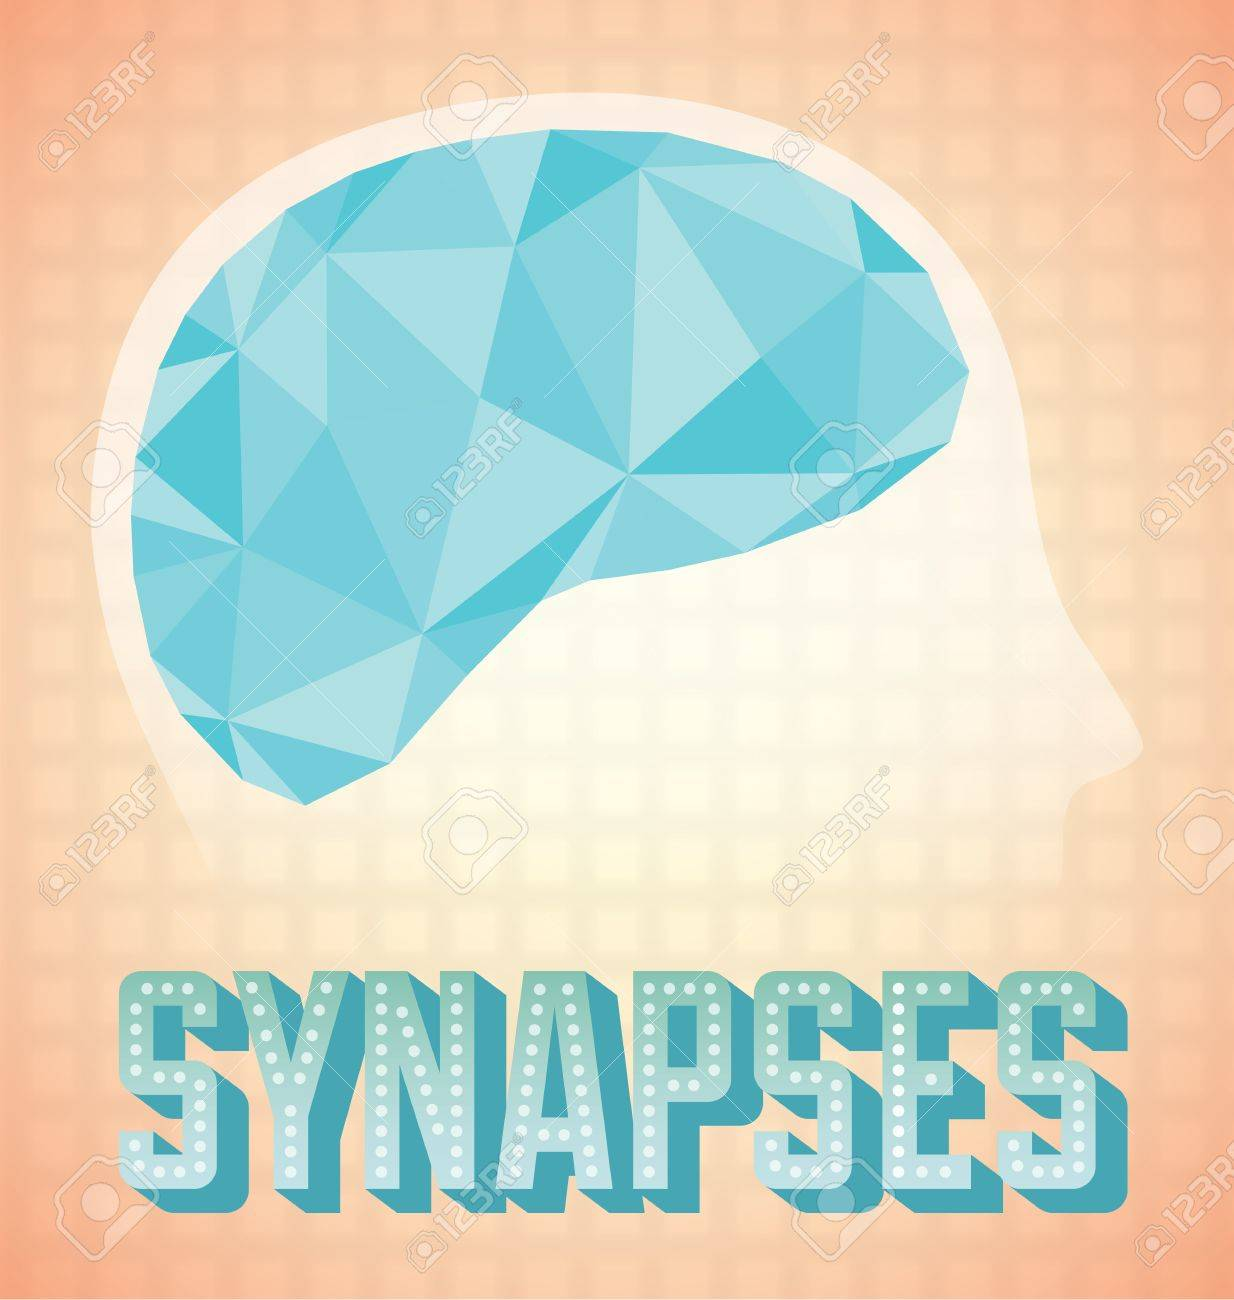 Abstract Brain Synapses Activity Icon and Wallpaper Stock Vector - 17200856